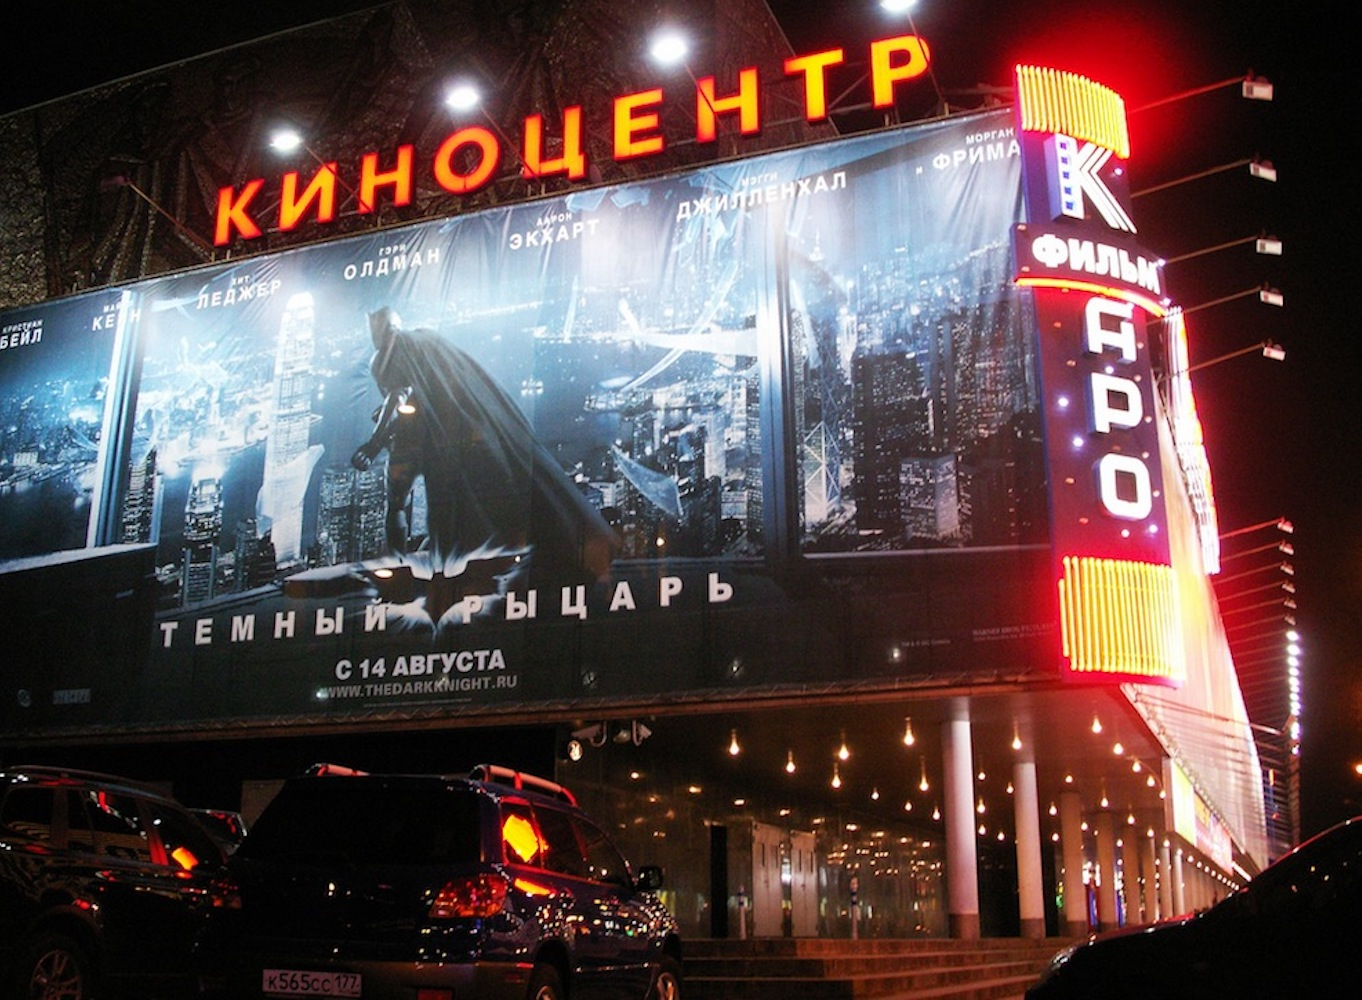 No more drama: Russian Ministry of Culture says cinemas are opening with happy films only